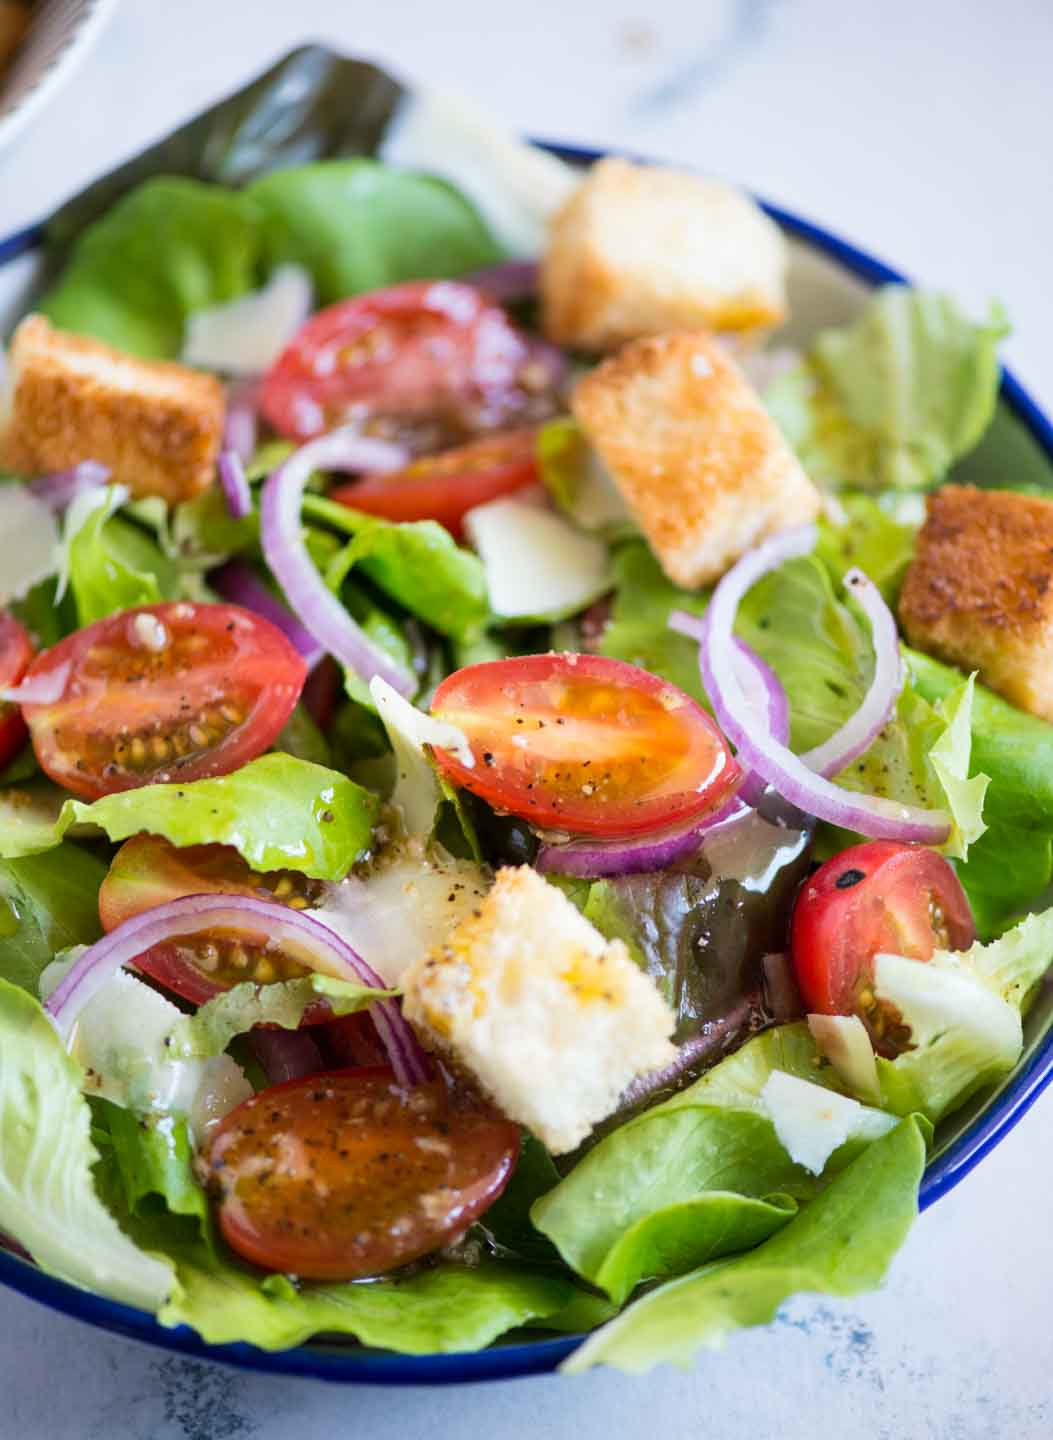 There is something so satisfying about this Italian Chopped Salad. Fresh greens, Tomatoes, Onions tossed in a light vinaigrette. A Simple salad that you can serve with any meal.